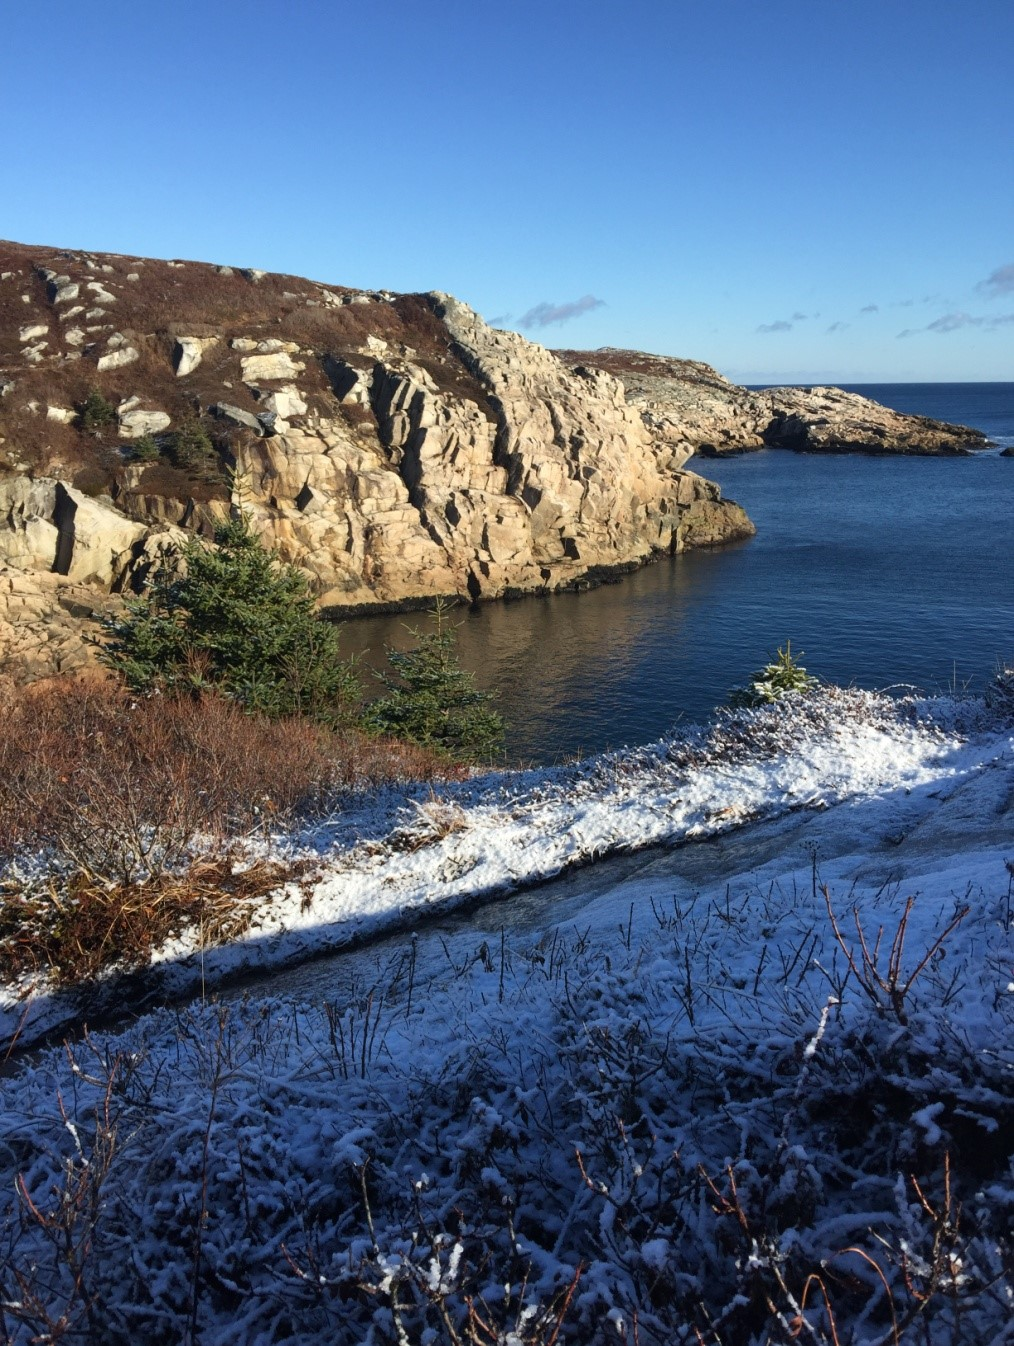 From snowy to sunny at Duncan's Cove, Nova Scotia